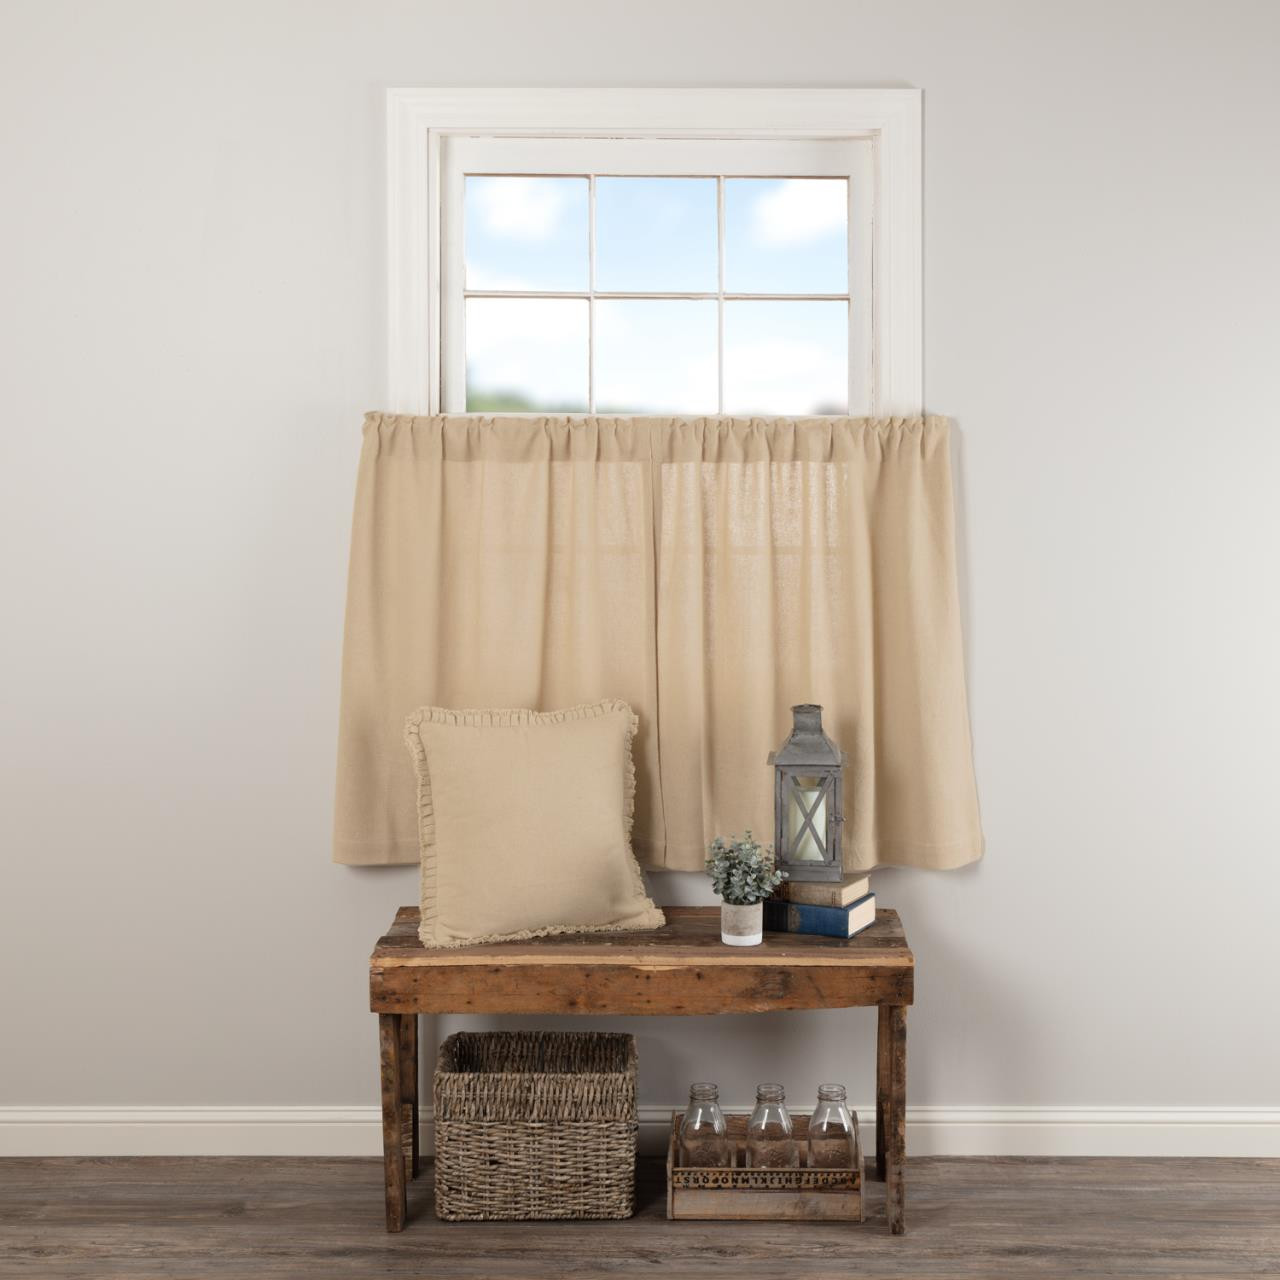 Burlap Vintage Tier Set - 840528182846